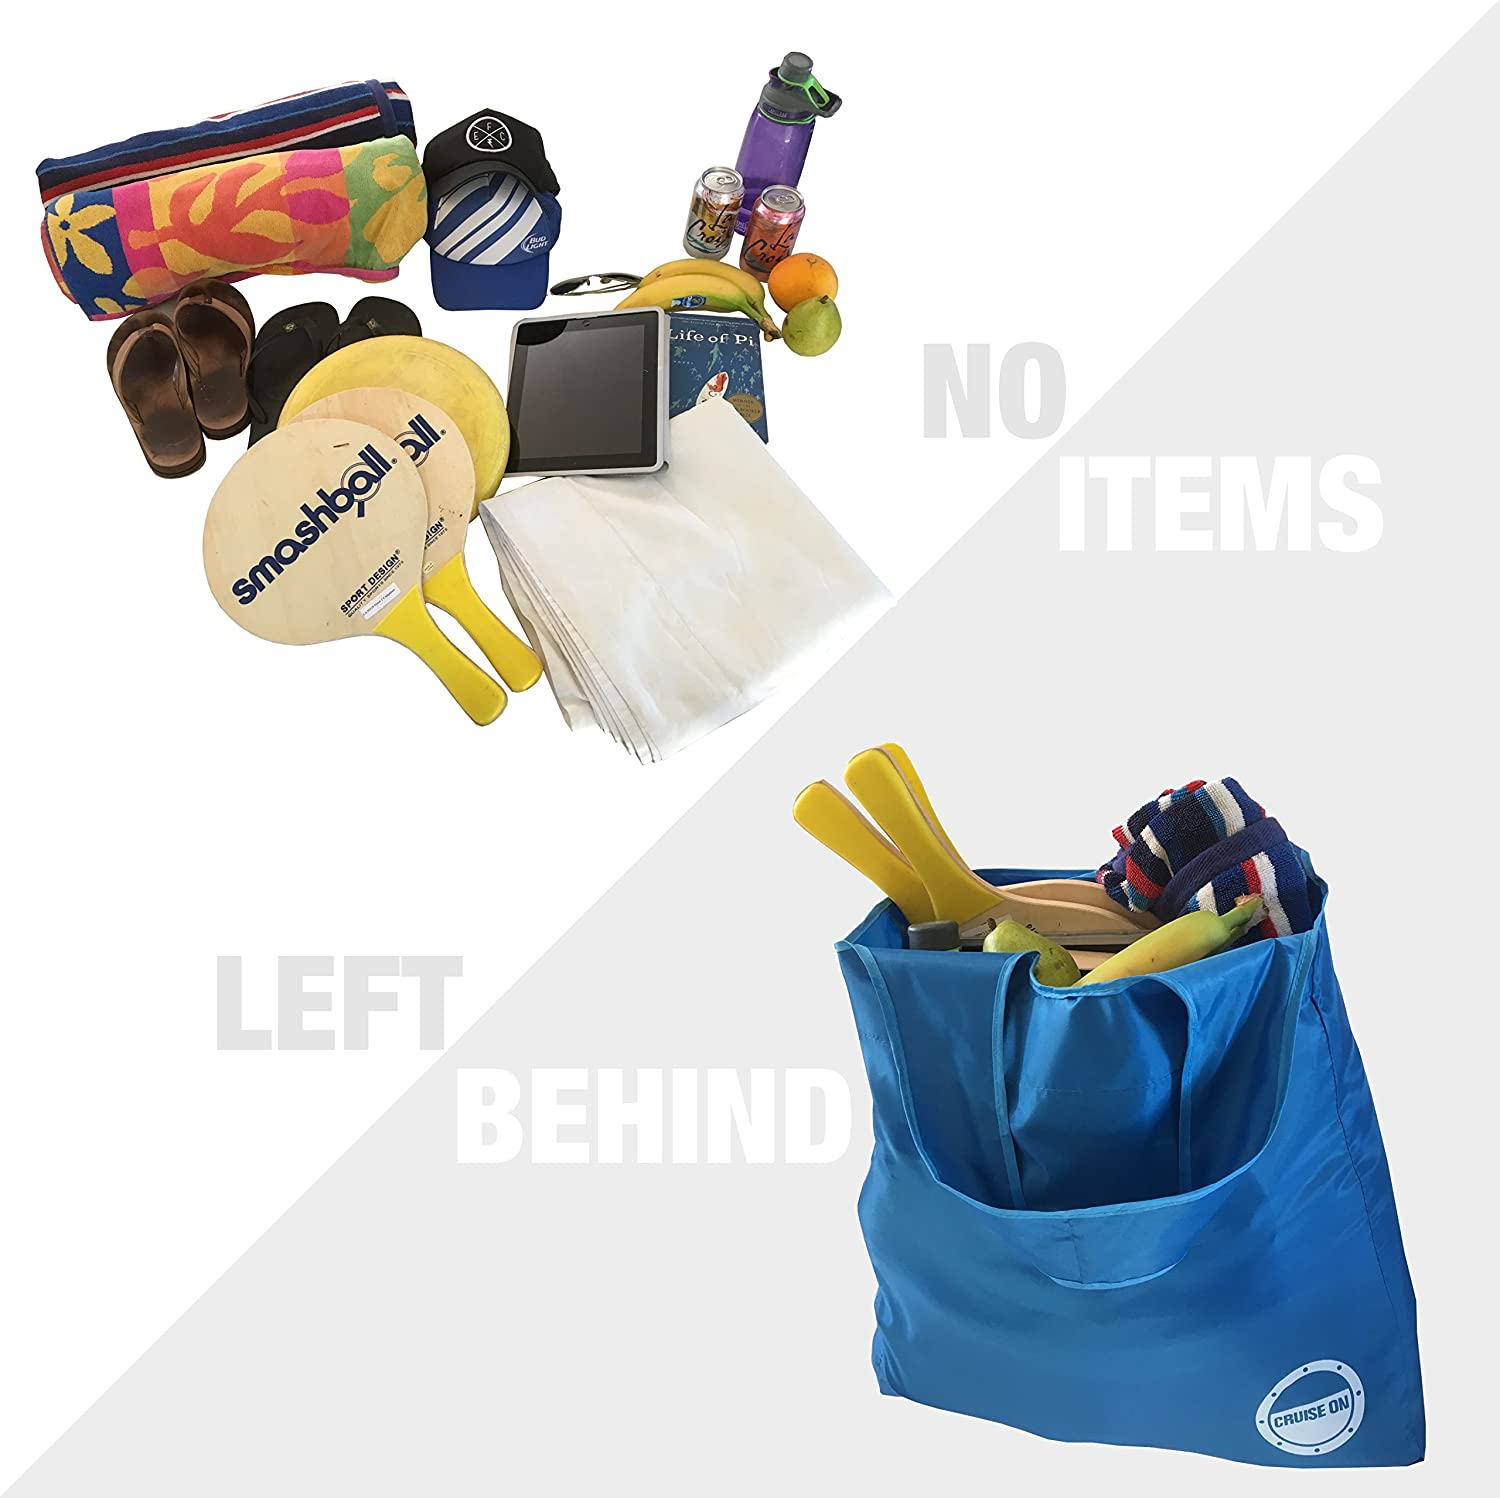 Lightweight Foldable /& Packable into Small Pouch Shopping /& Travel Large Waterproof Nylon Totes Collapsible Travel Tote Bag for Cruise Beach